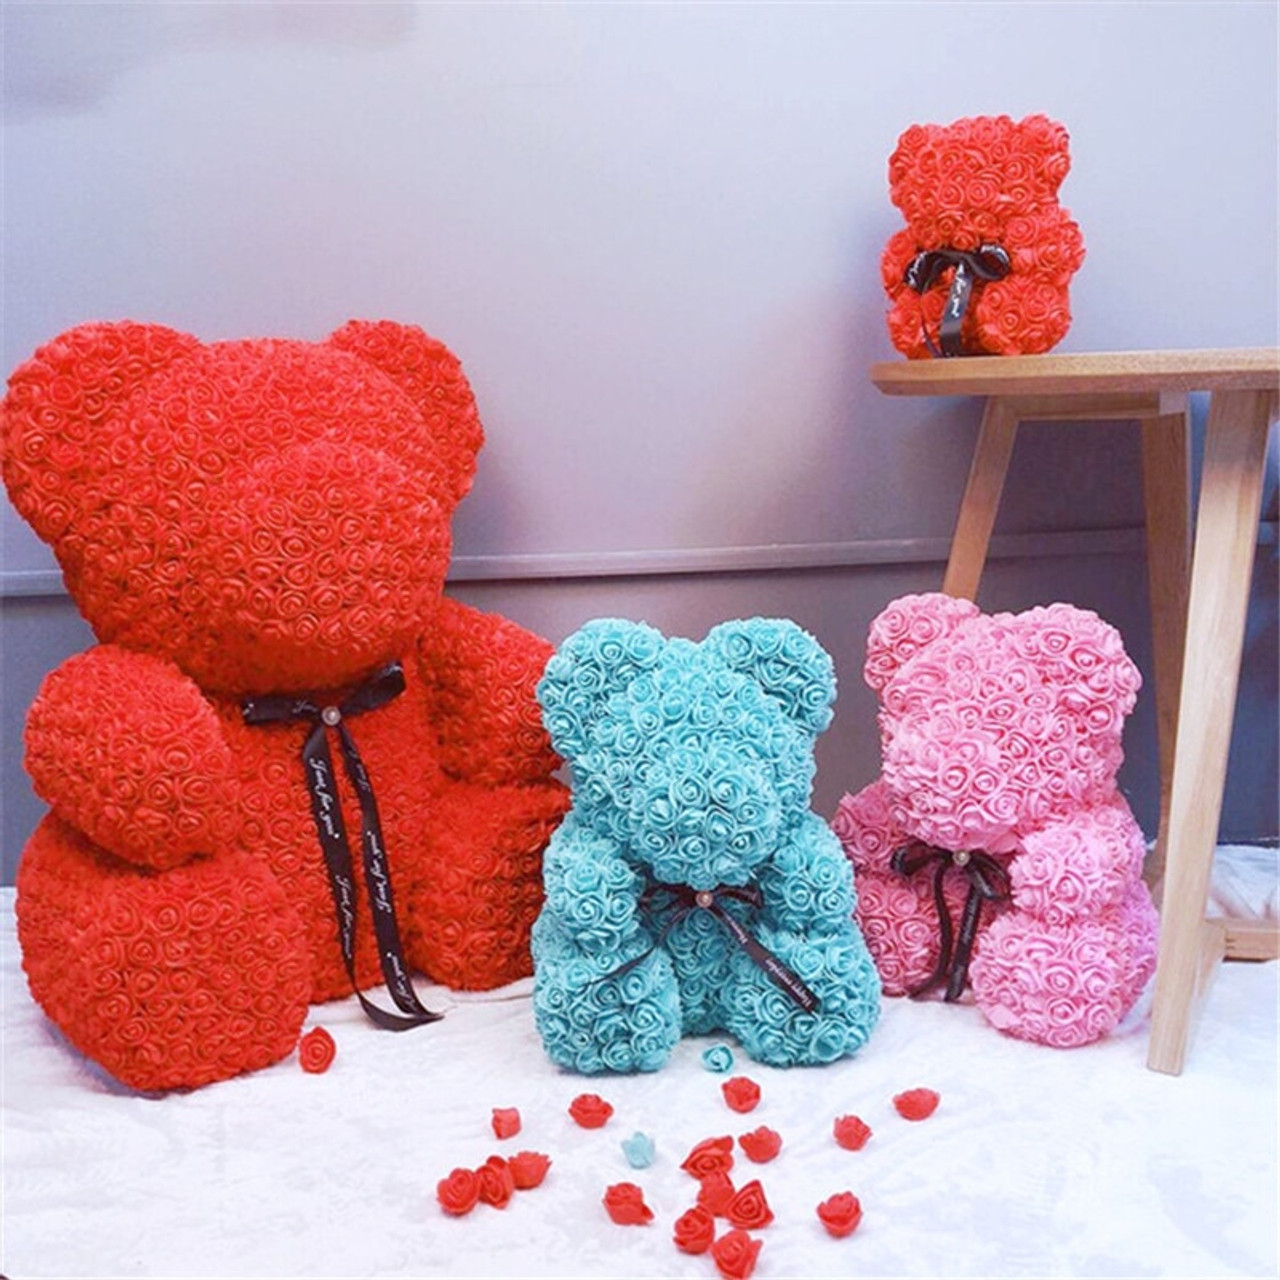 Arts & Crafts, Diy Toys Toys & Hobbies Diy Carft Rose Bear Rose Toys Flower Artificial Christmas Gifts For Women Valentines Day Gift Rose Bear